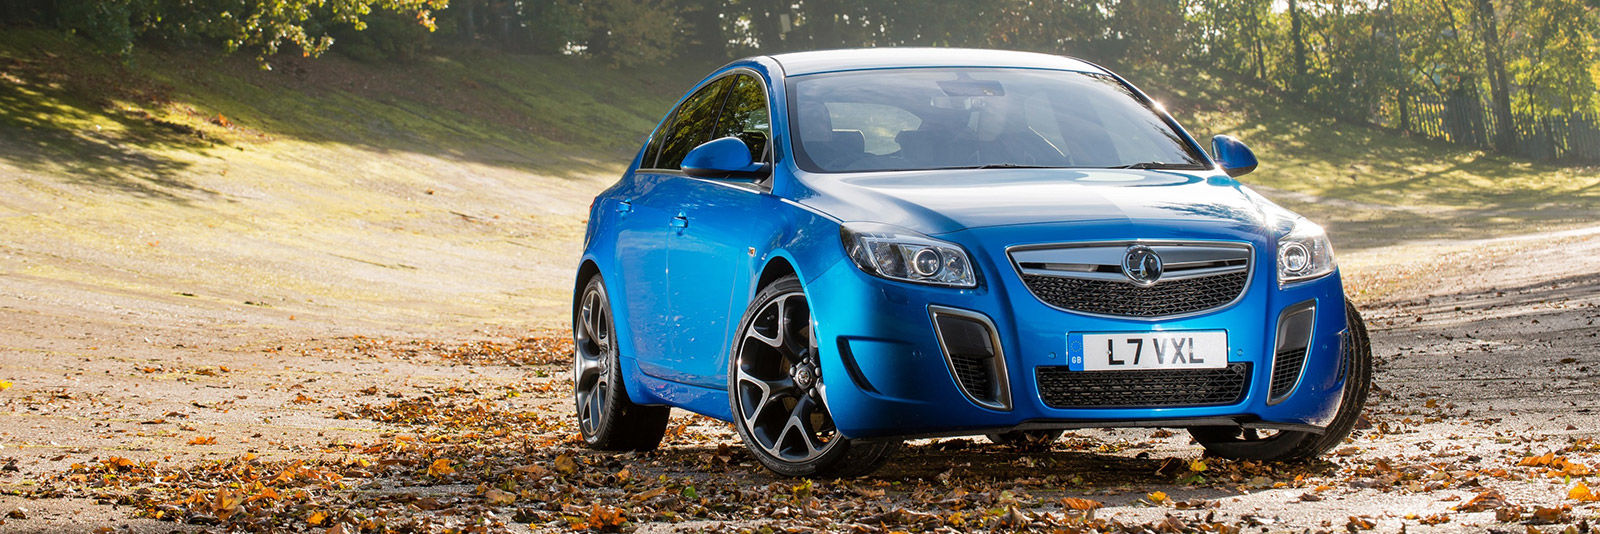 At Less Than £30,000, The Vauxhall Insignia VXR Is Comfortably The Cheapest  Car On Our List. Donu0027t Be Fooled Into Thinking Itu0027s A Slouch, Though.